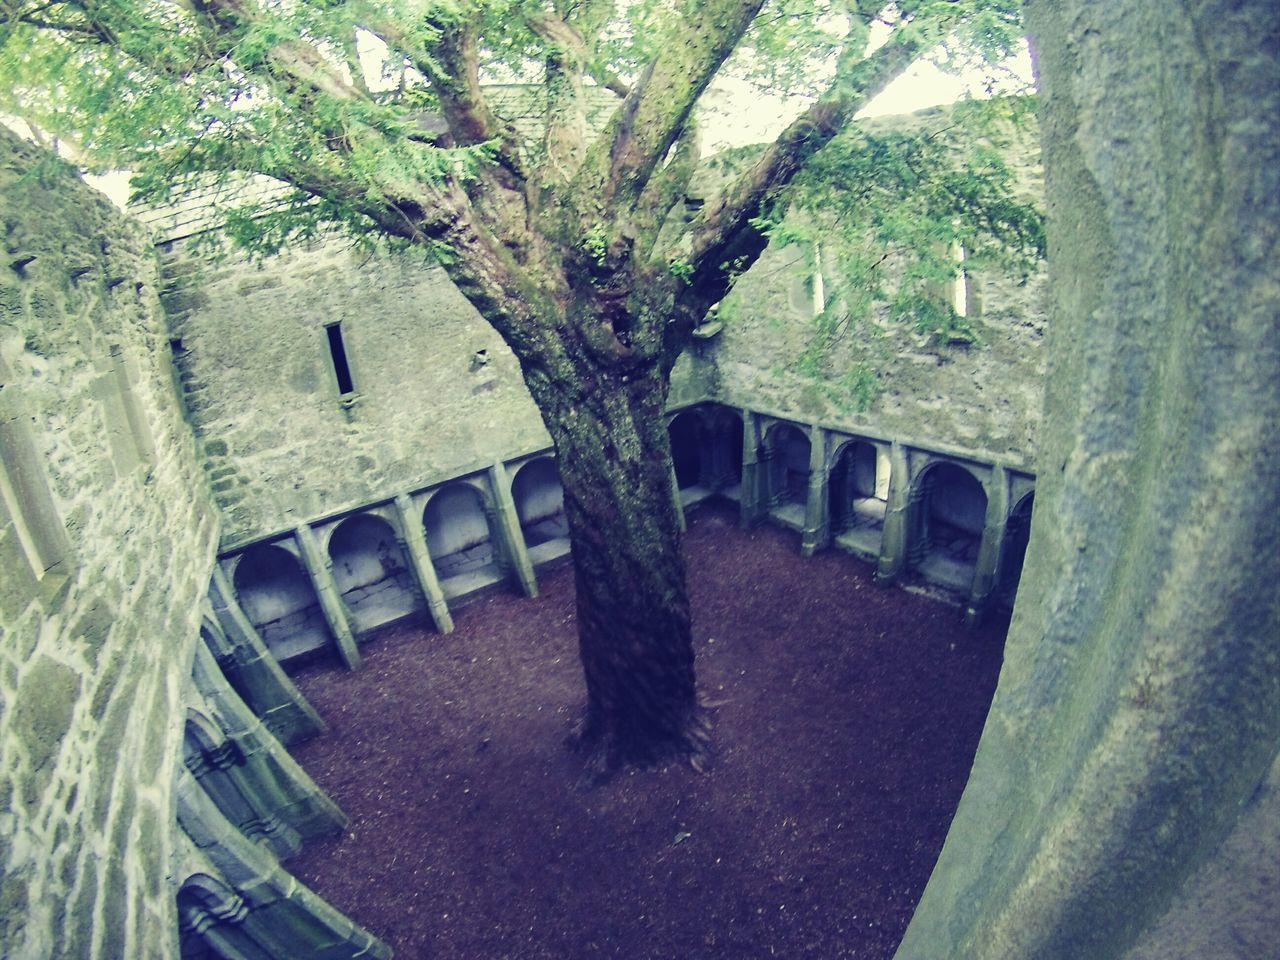 tree, no people, high angle view, day, tree trunk, nature, growth, outdoors, architecture, close-up